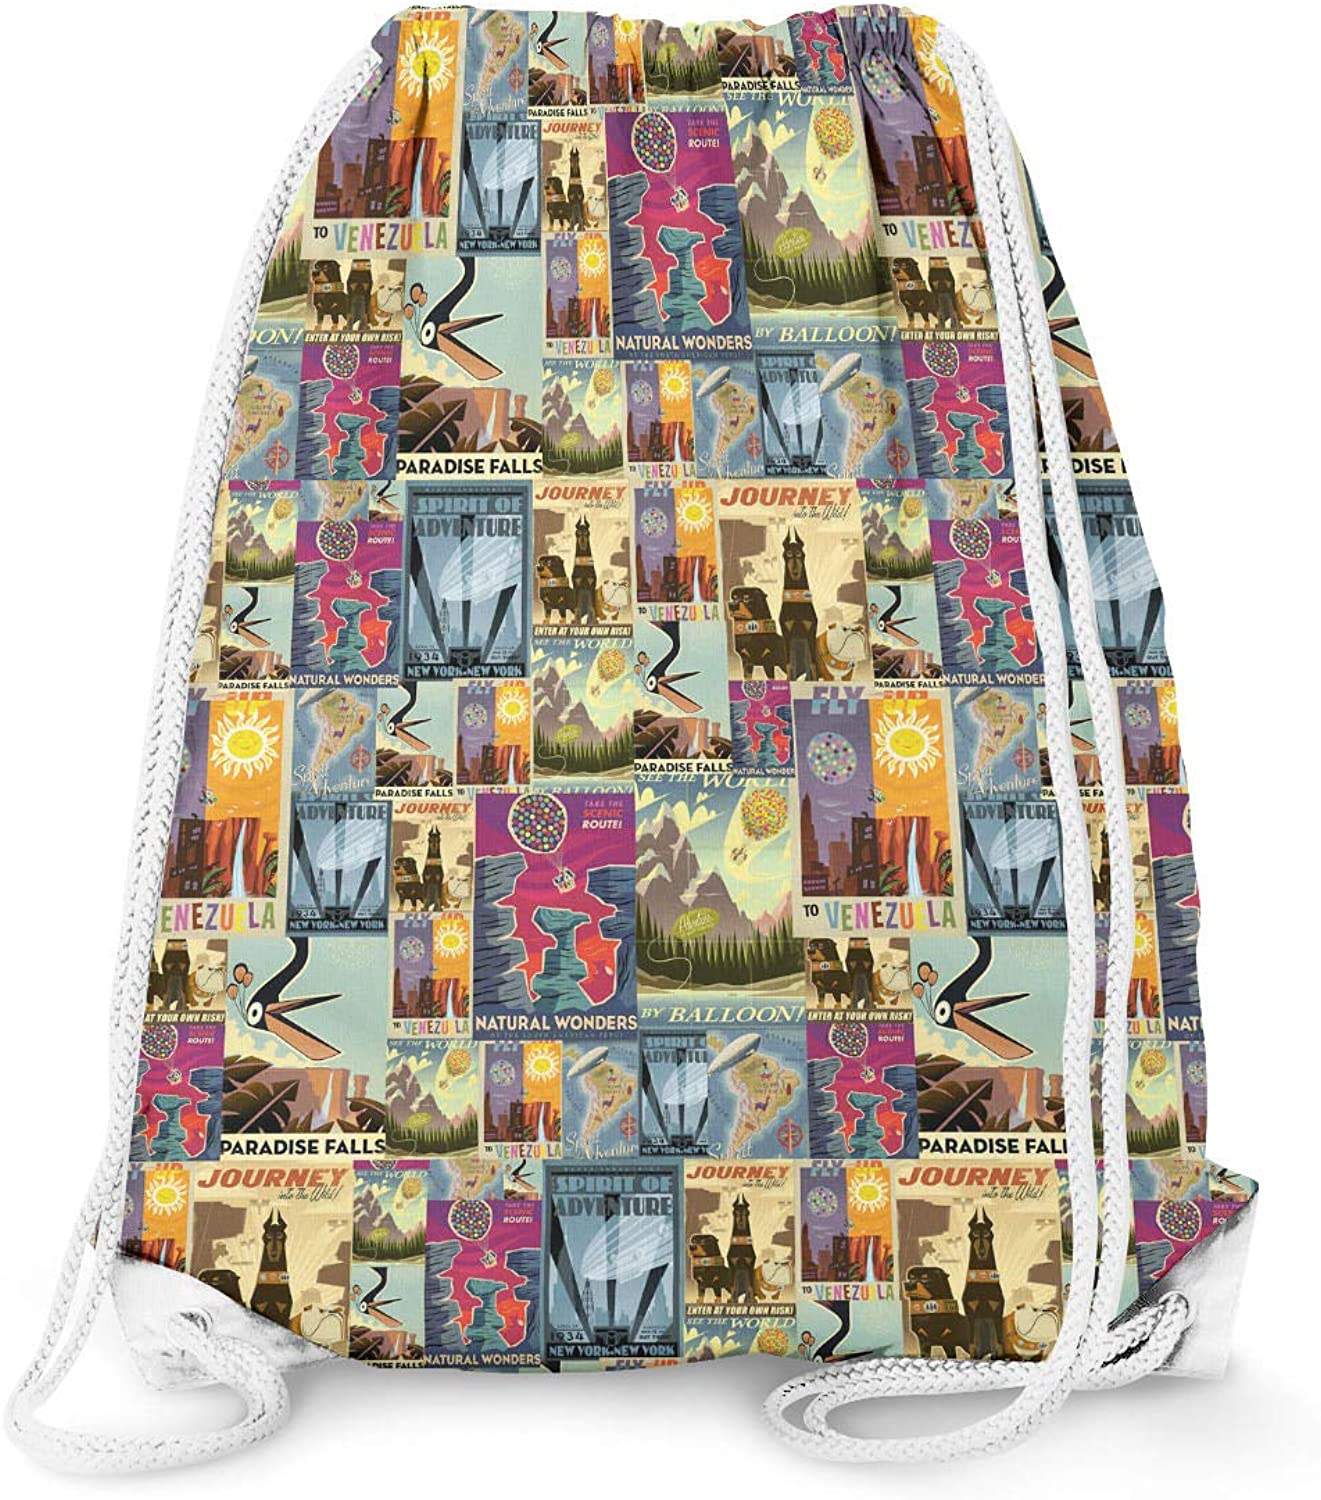 Pixar Up Travel Posters Drawstring Bag - Large (13.3 x 17.3)